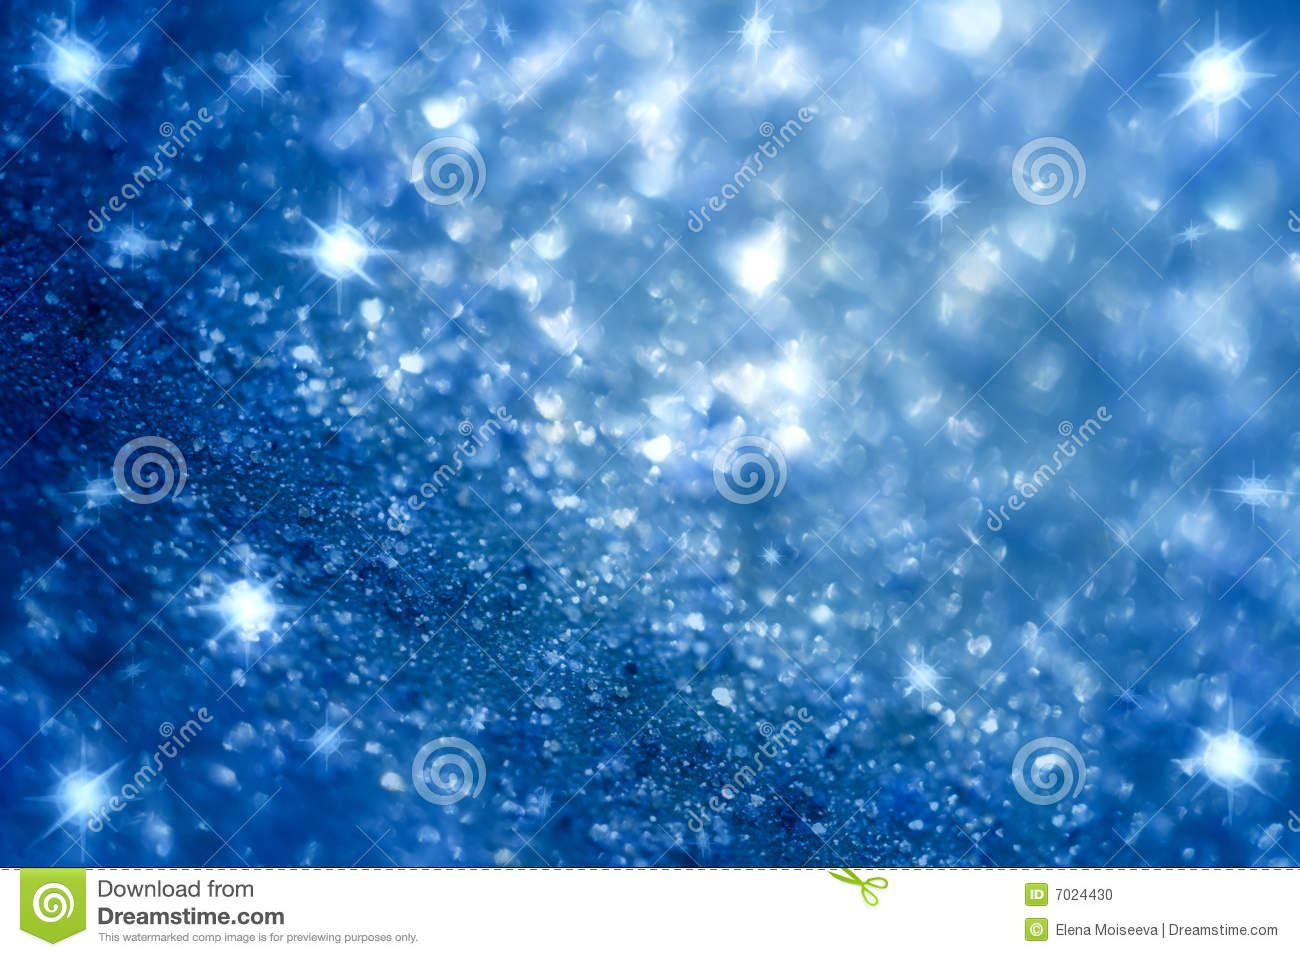 Dark Blue Star And Glitter Sparkles Background Stock Photo ...